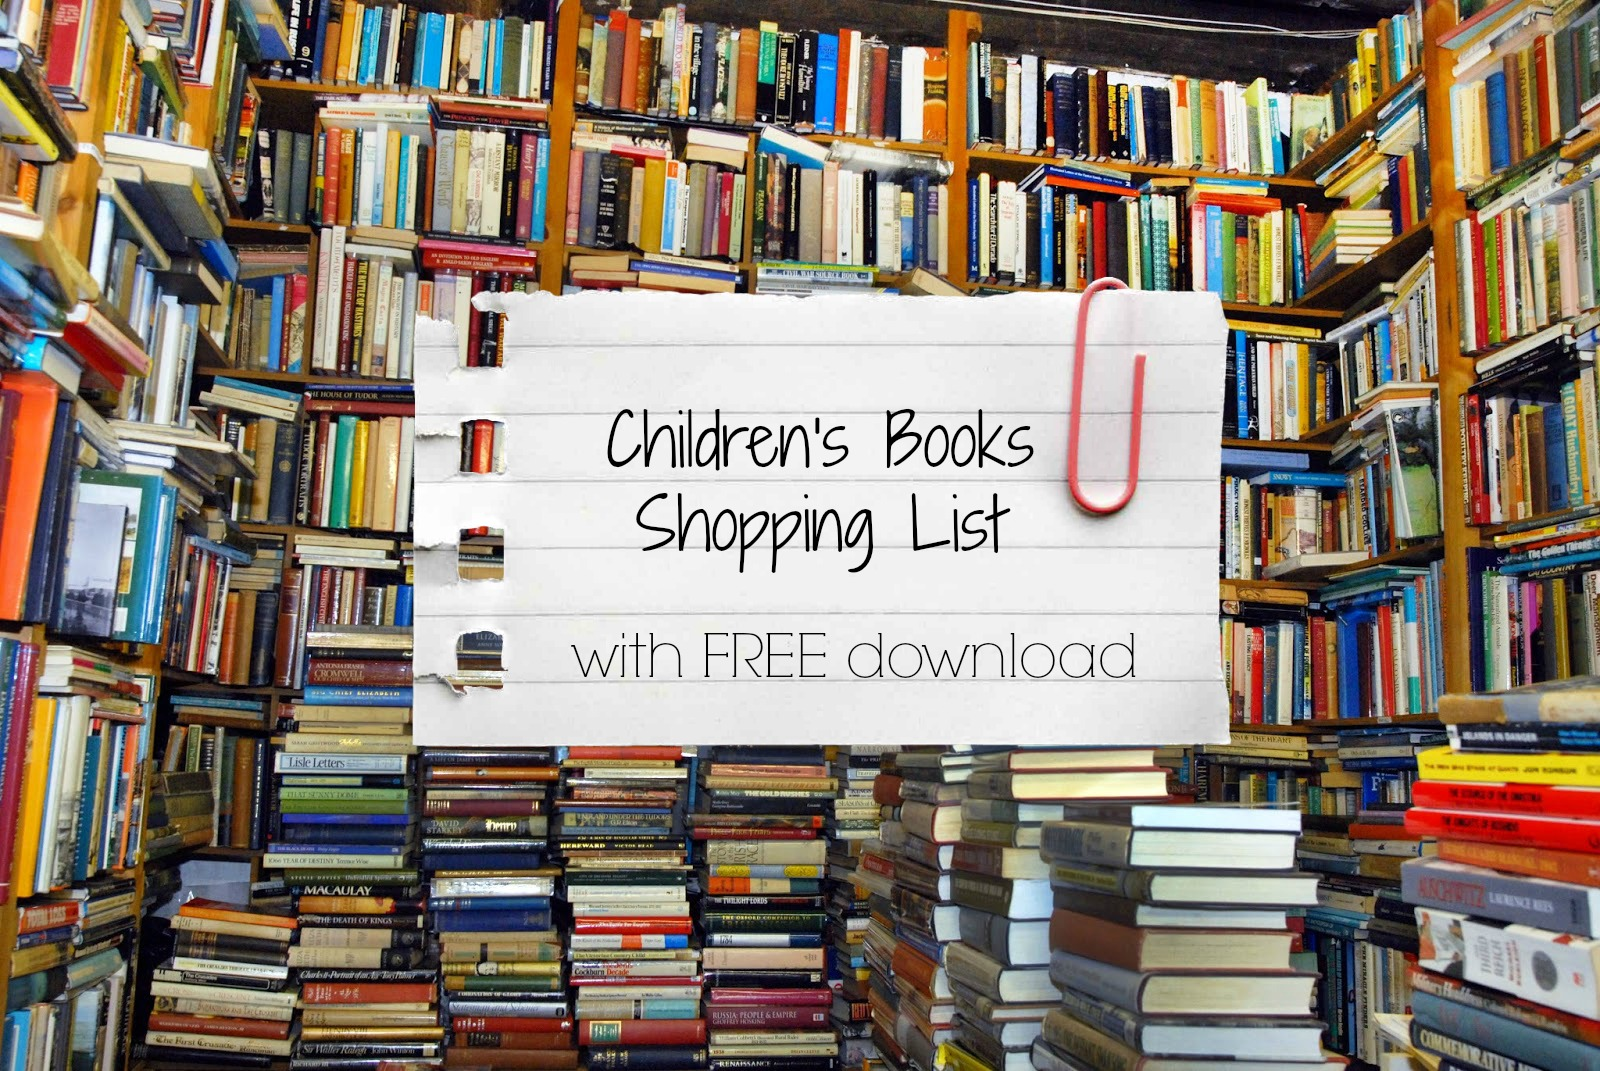 Children's Books Shopping List (with FREE download)